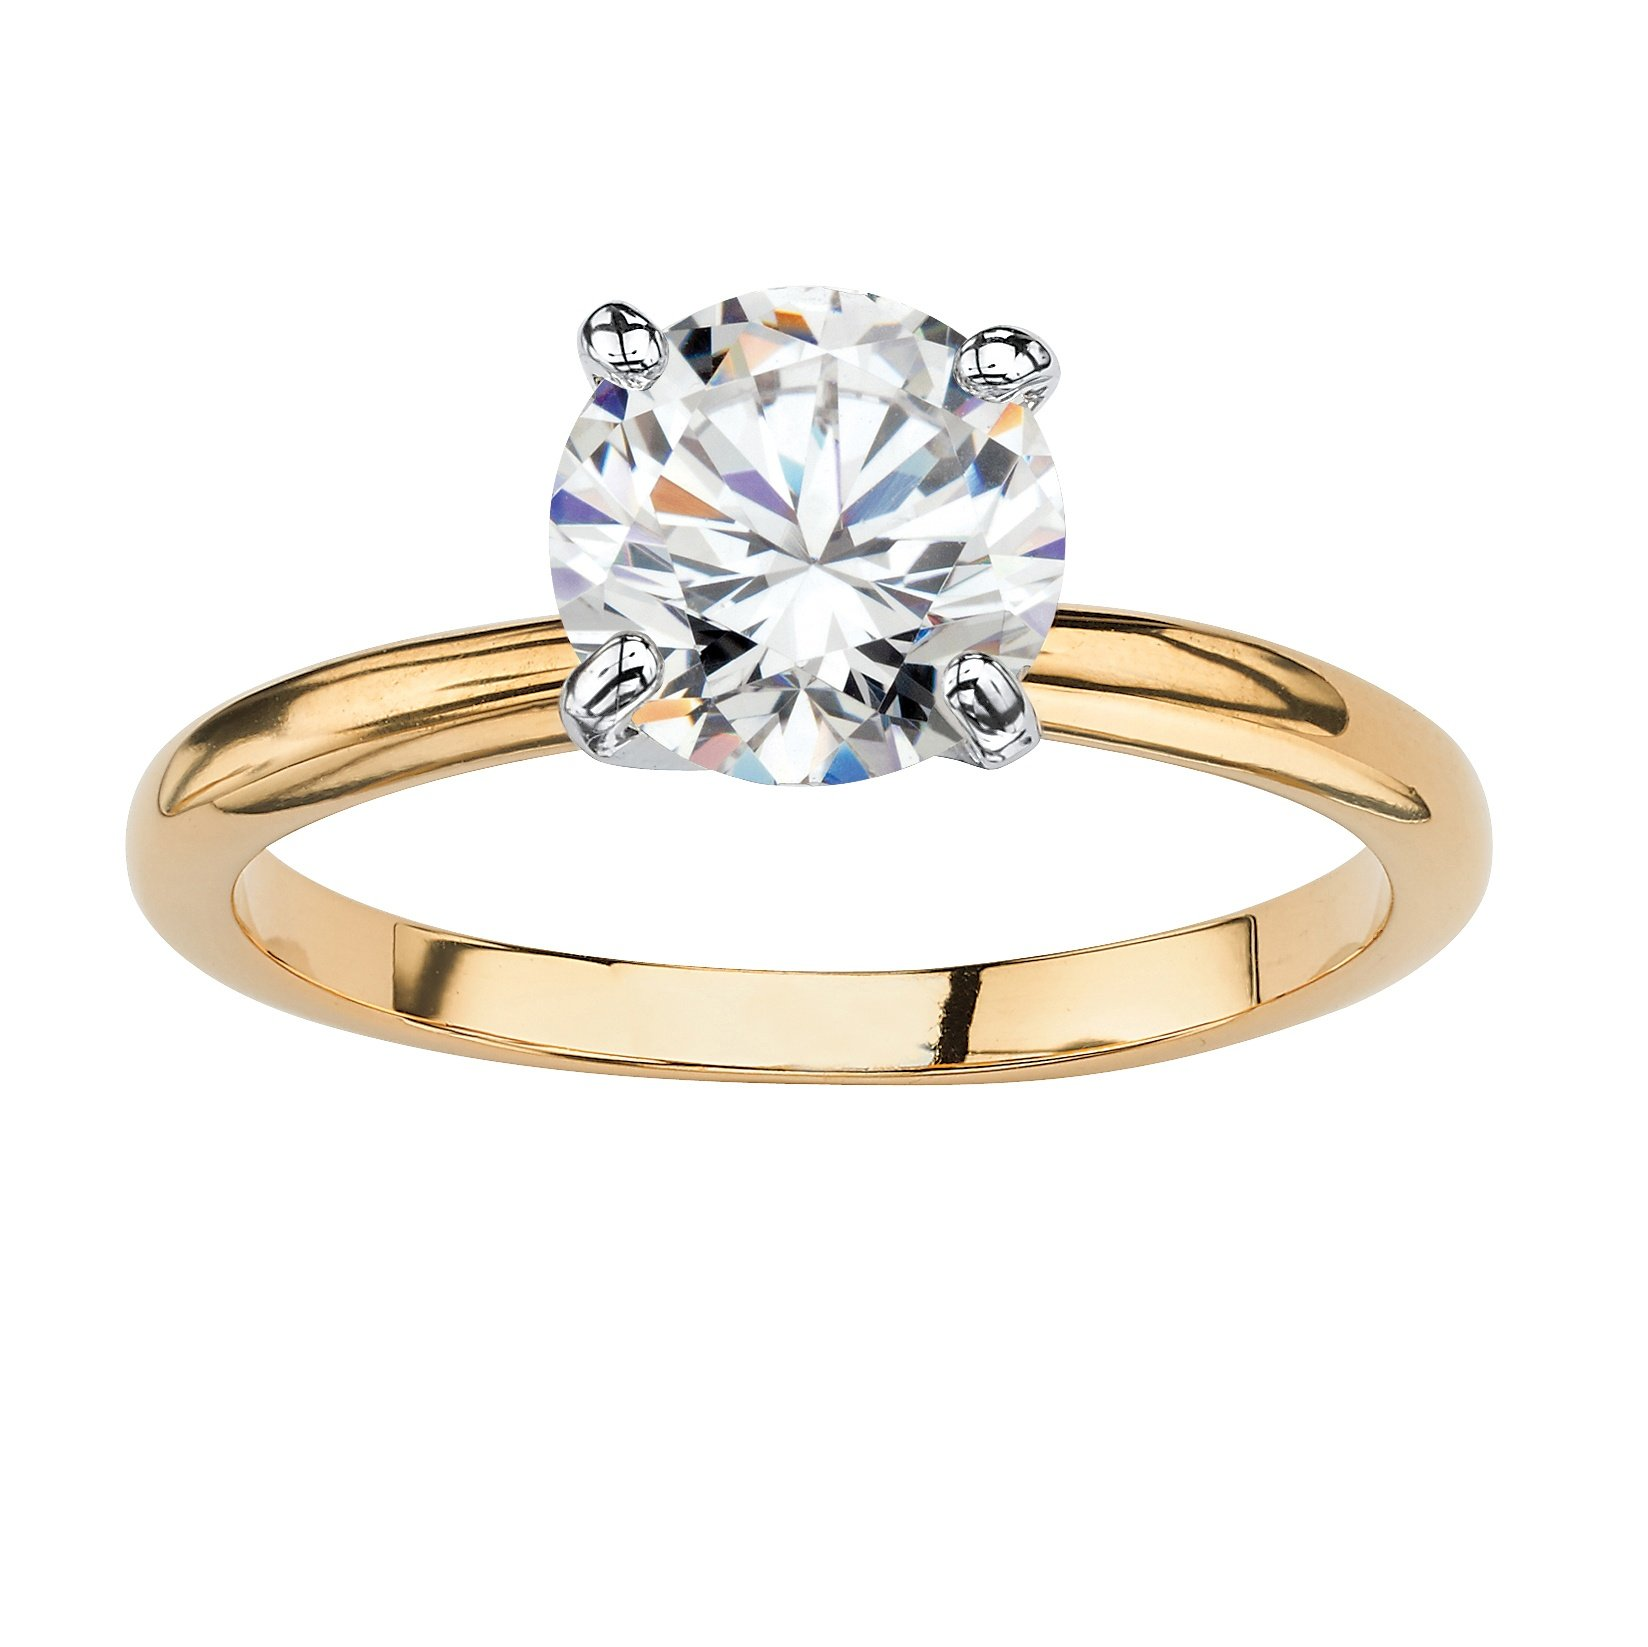 Palm Beach Jewelry 18K Yellow Gold Plated Round Cubic Zirconia Solitaire Engagement Ring Size 7 by Palm Beach Jewelry